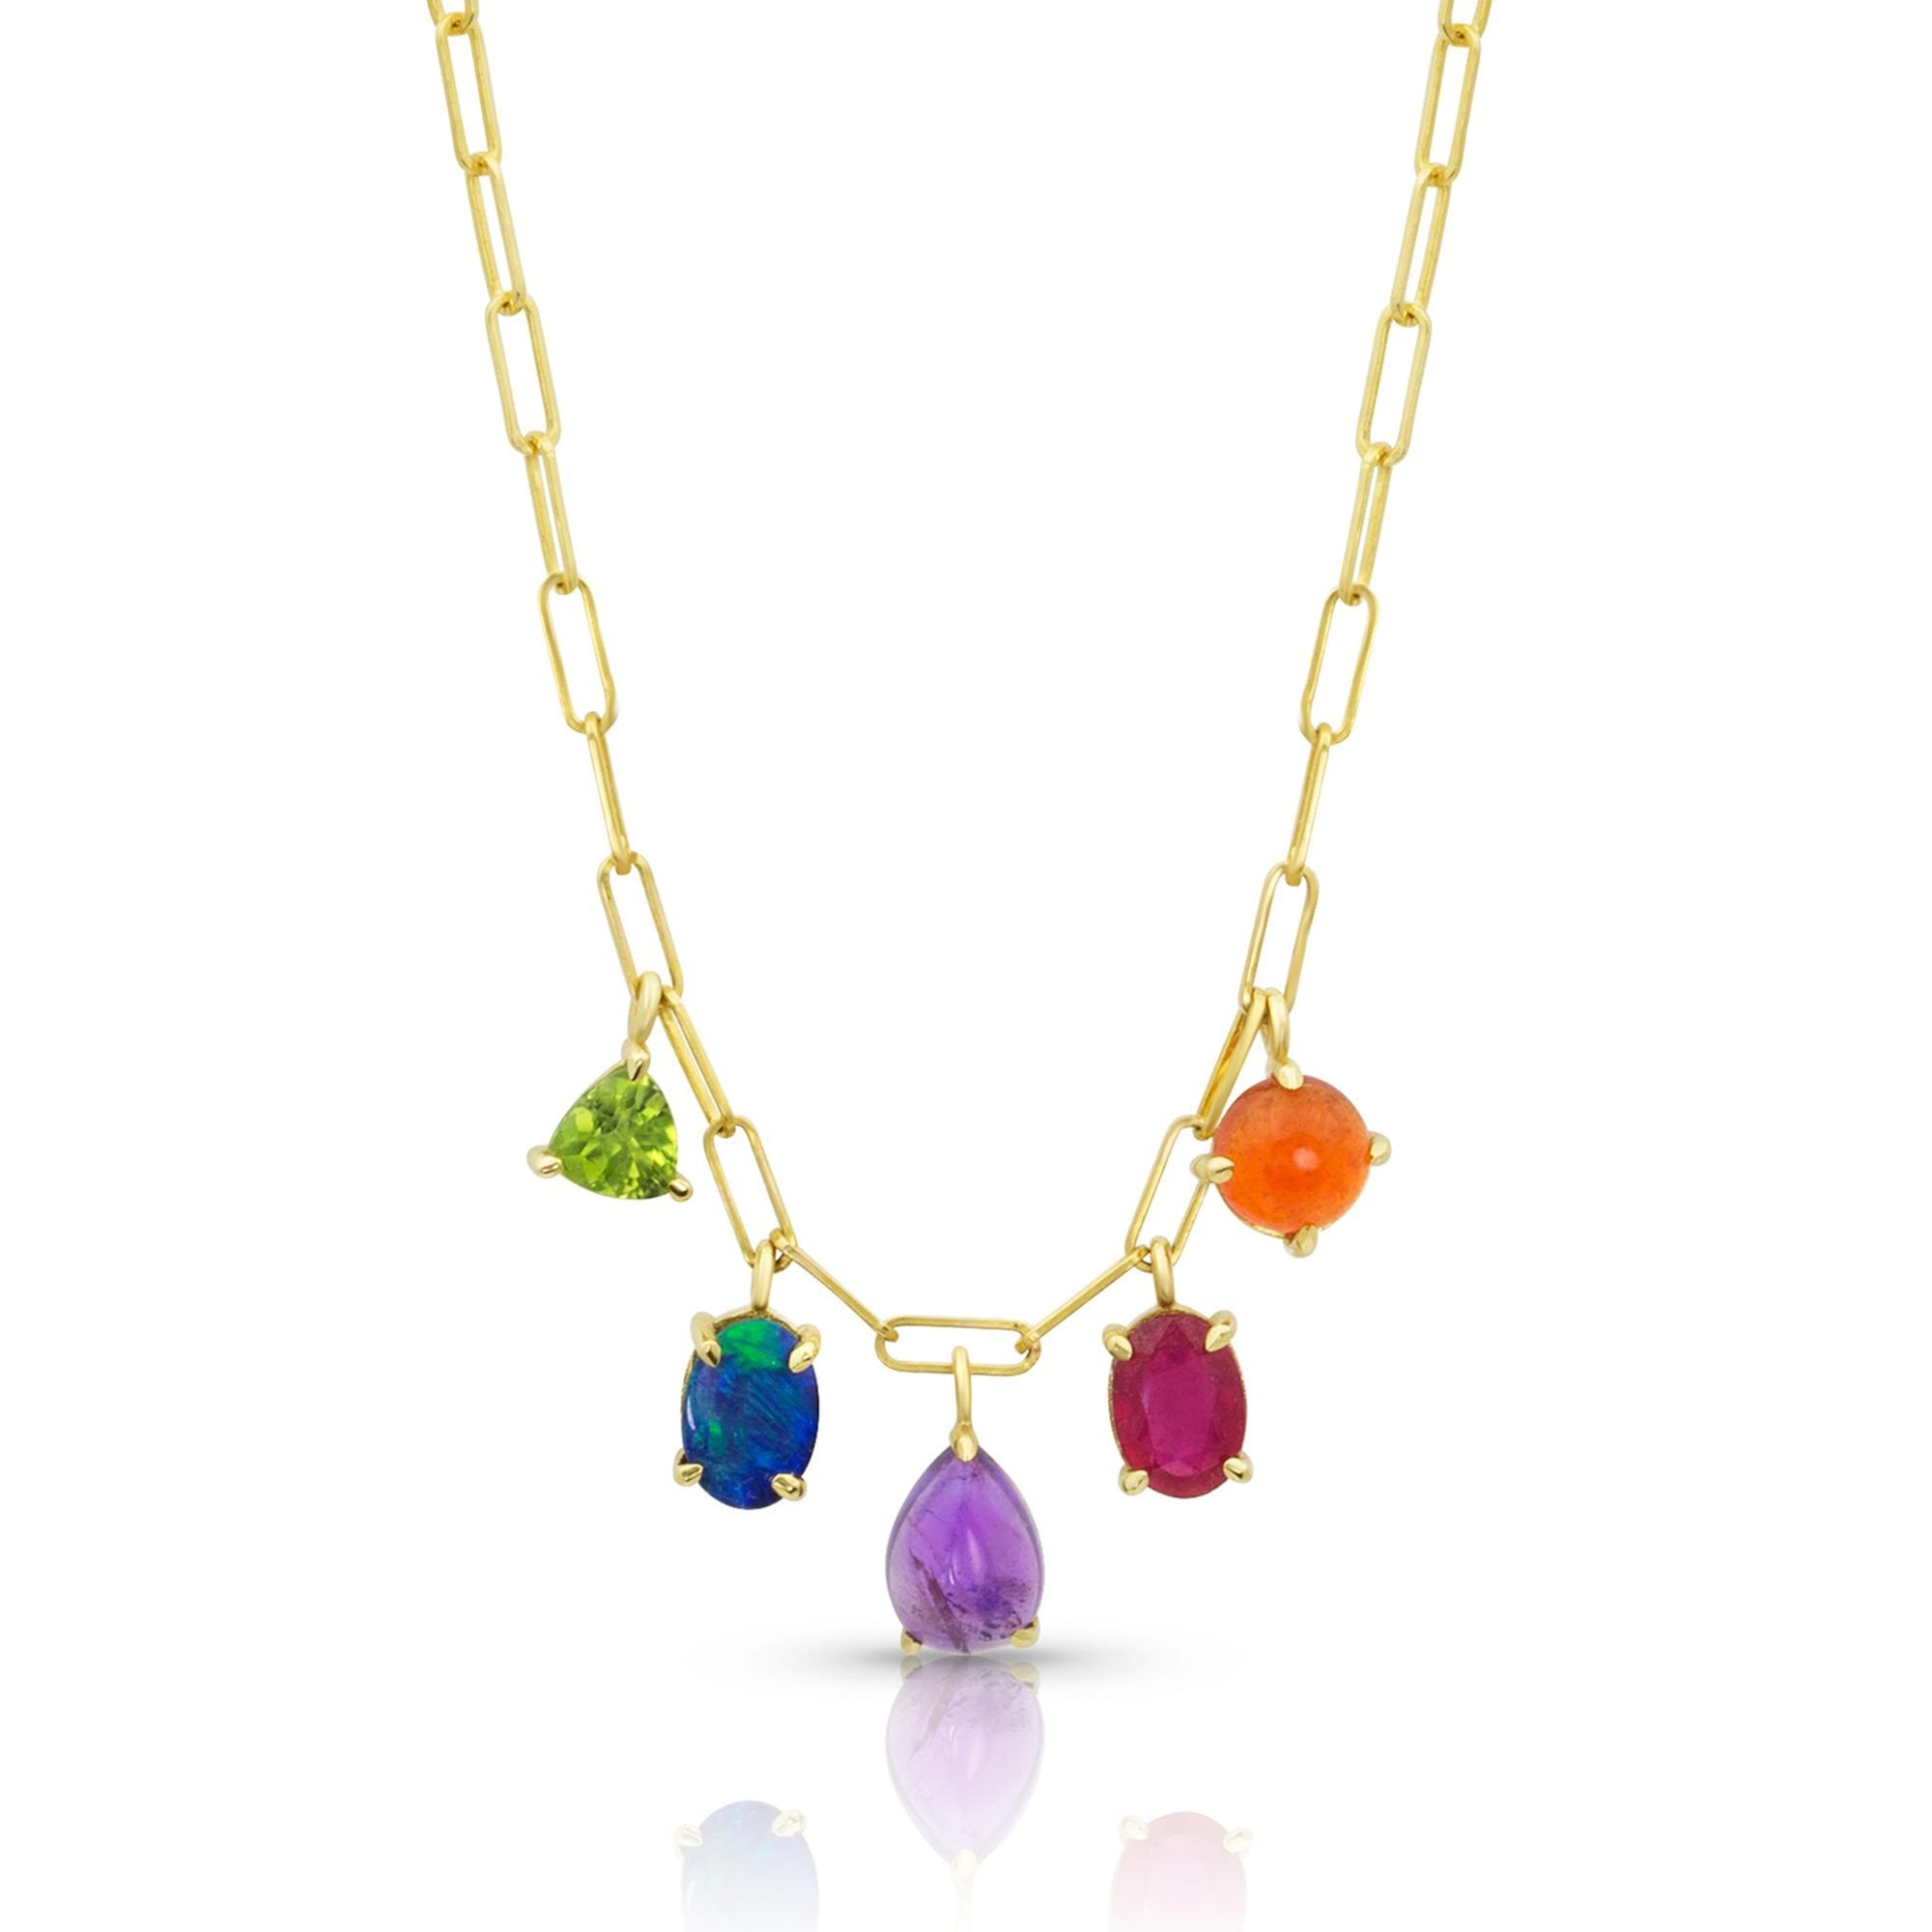 Vincents Fine Jewelry | M. Spalten | 5 Stone Gemdrop Necklace